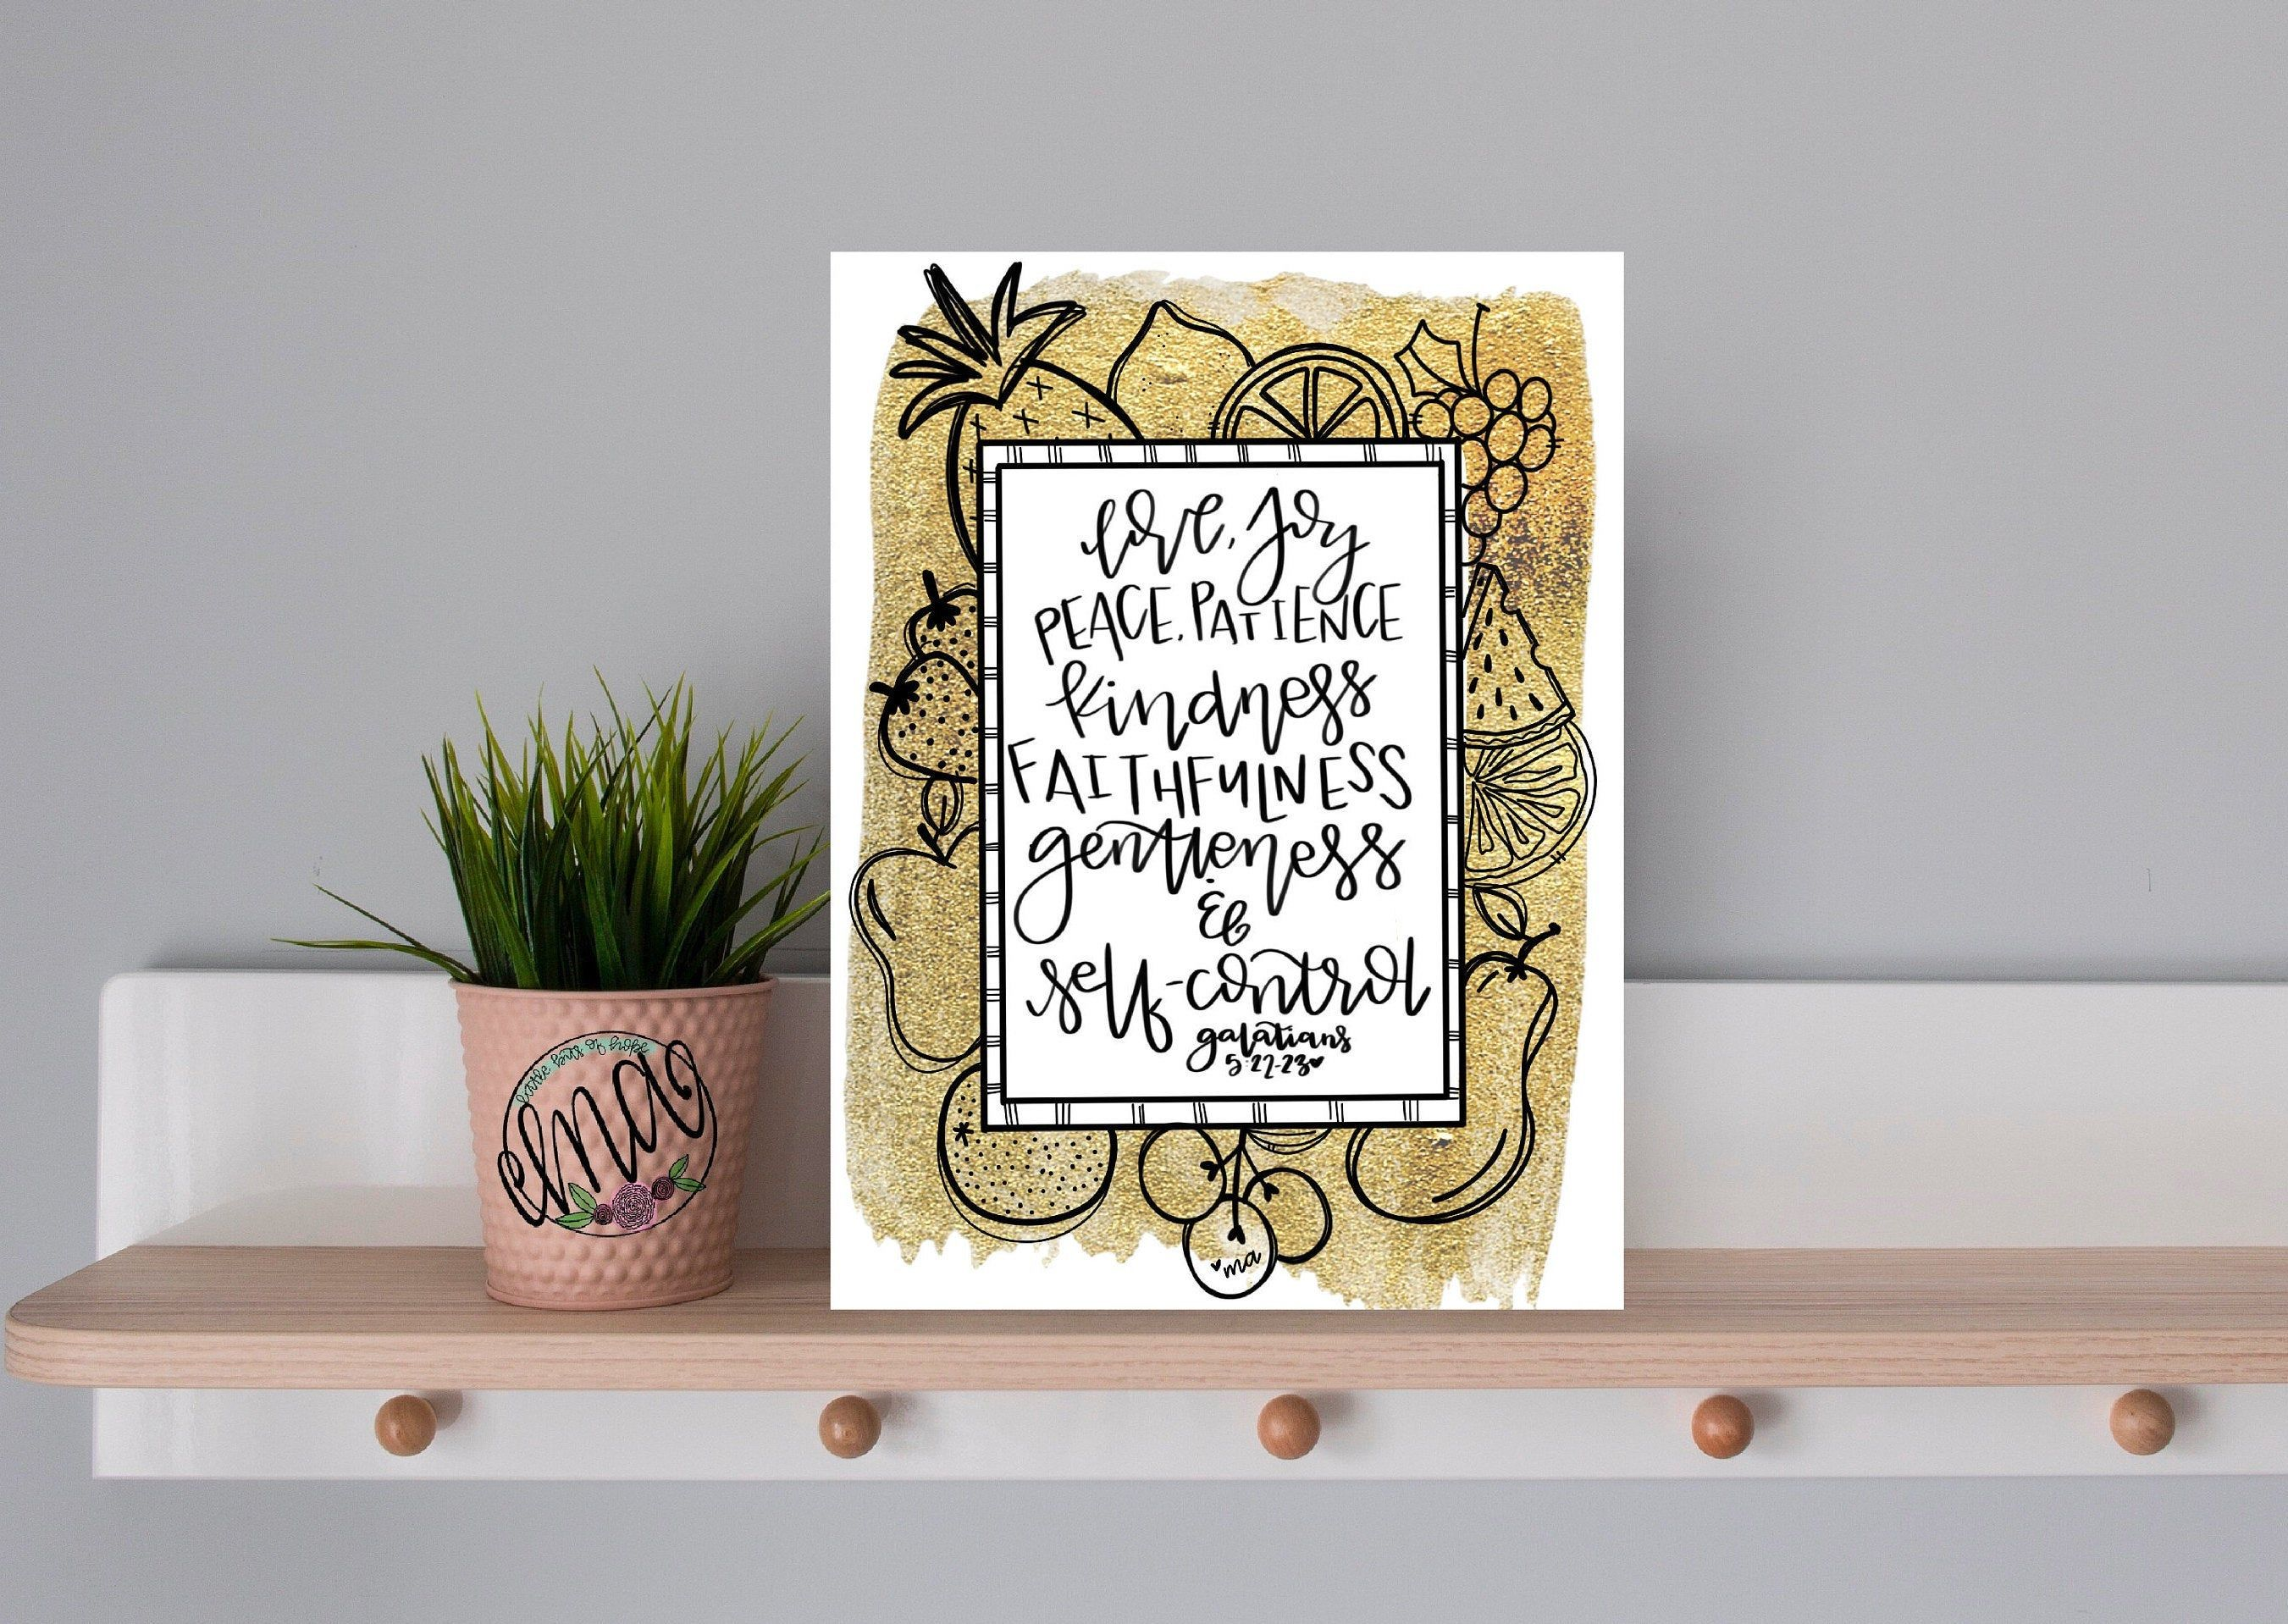 Fruit of the spirit galatians 52223 hand lettered and